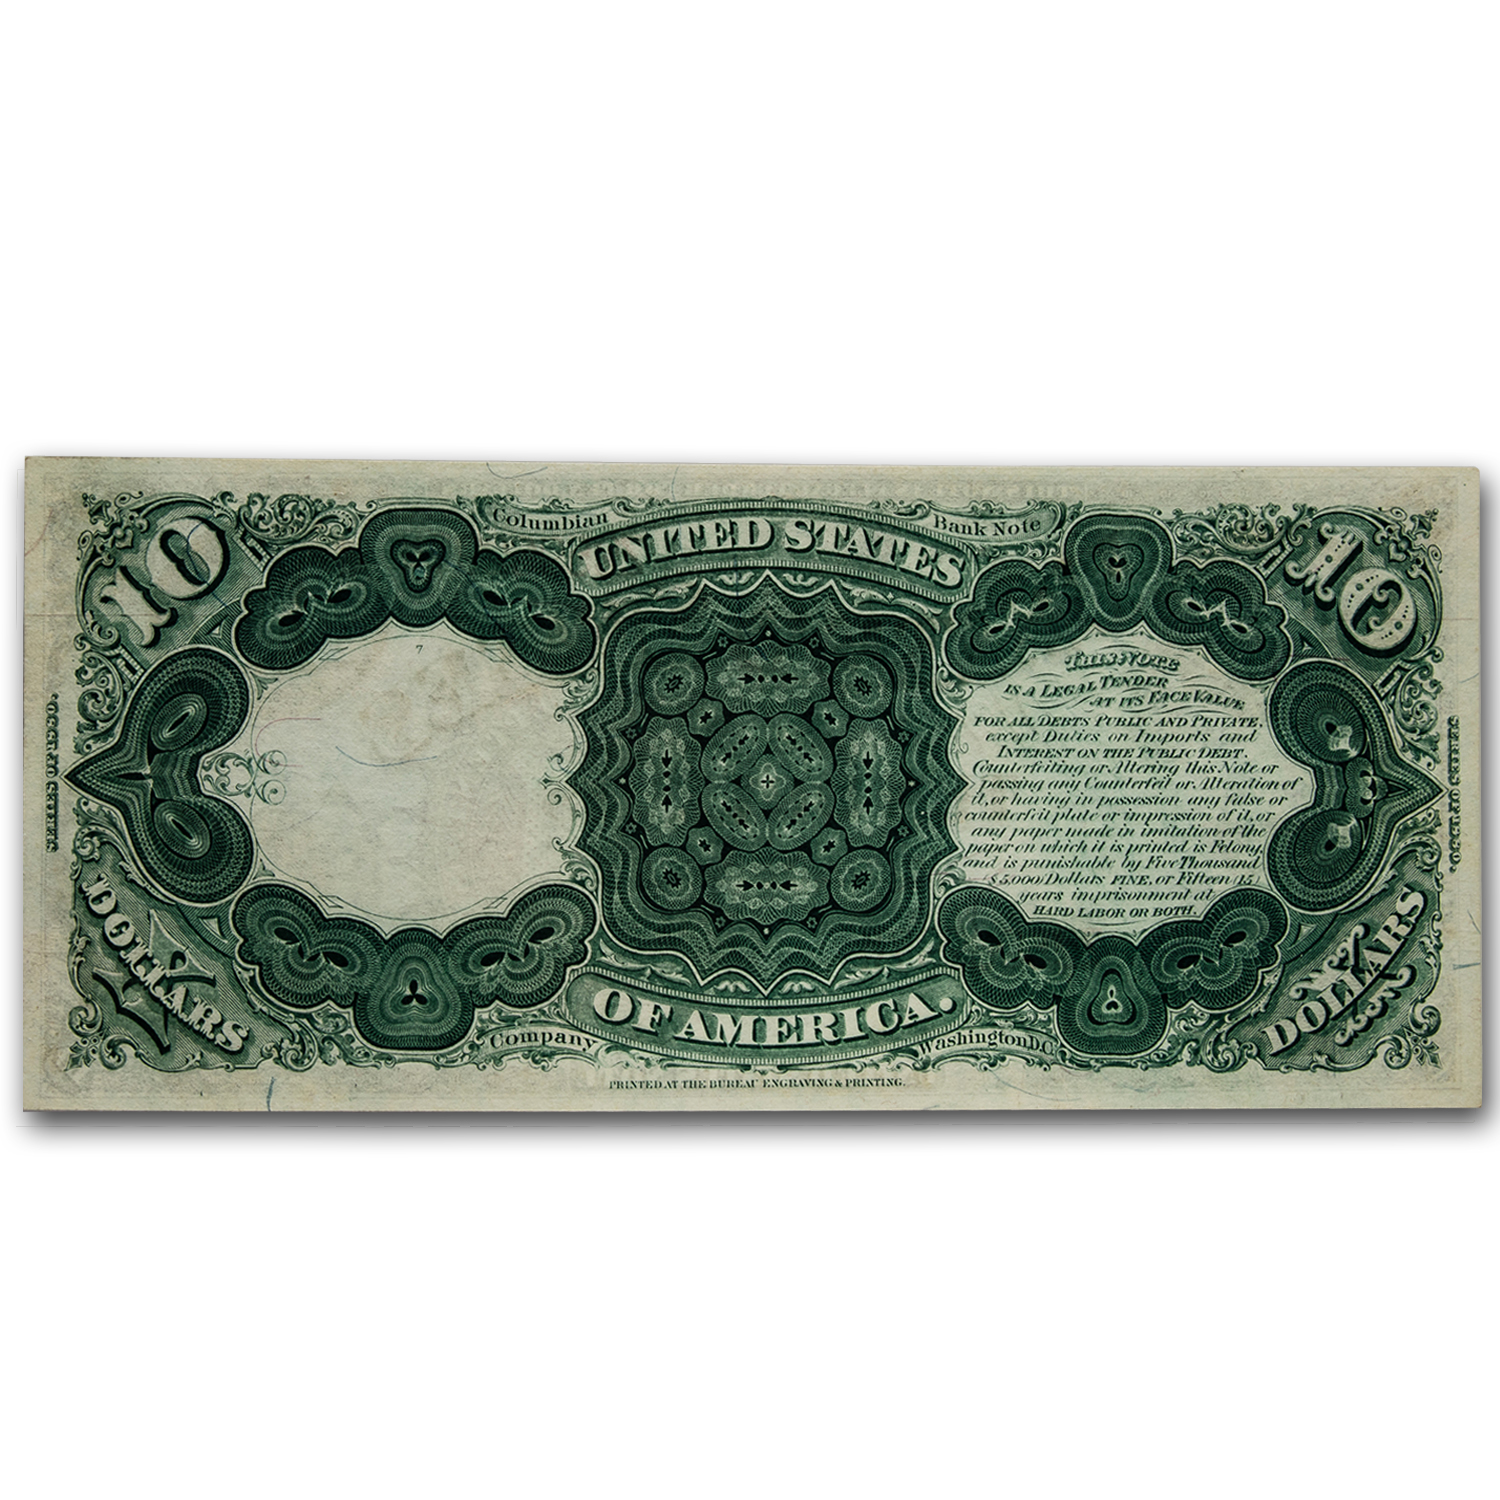 1880 $10 Legal Tender Head of Daniel Webster CU-64 EPQ PMG